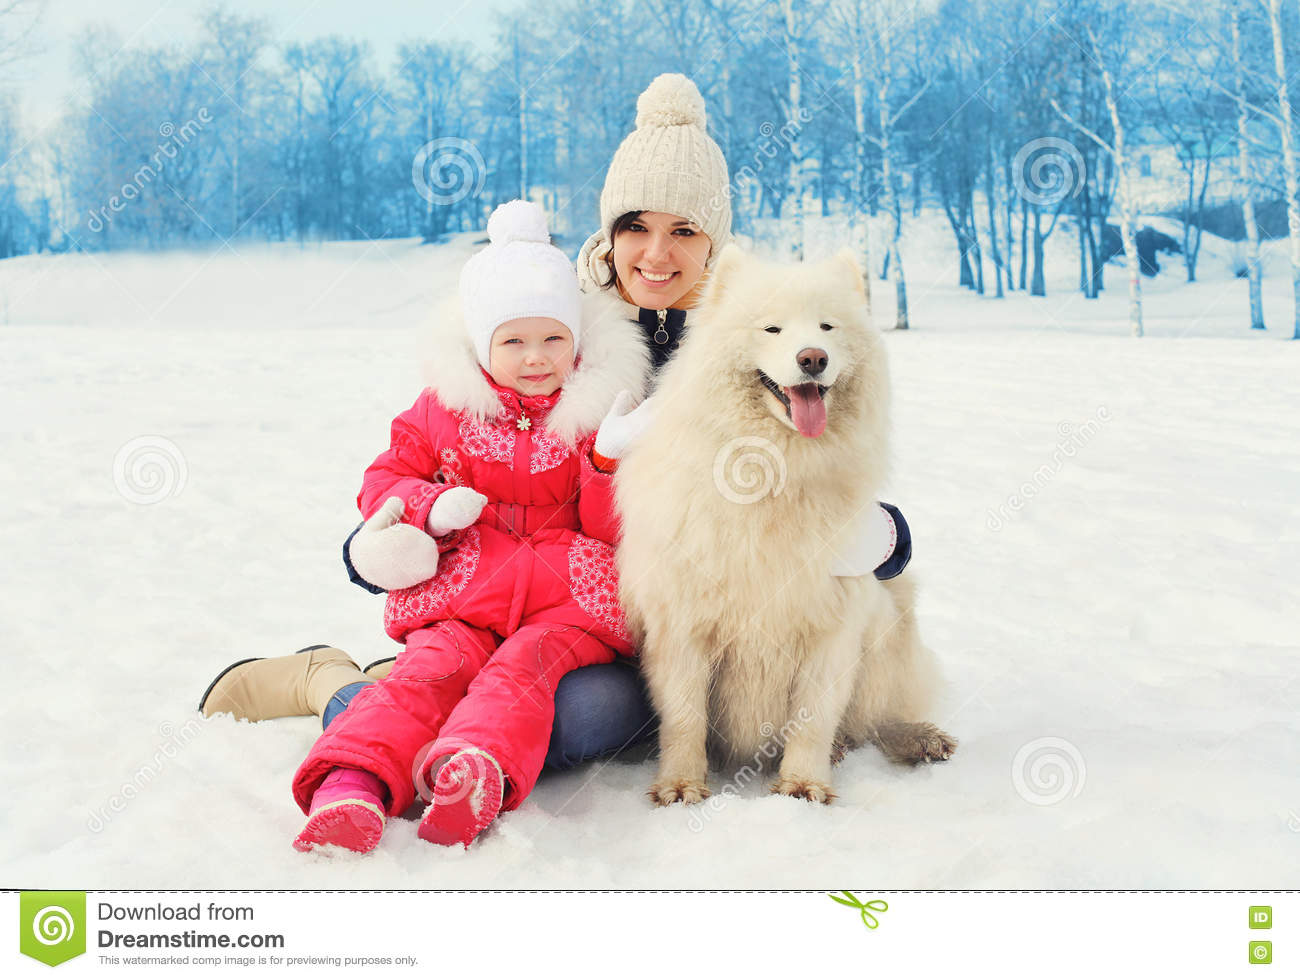 Mother and baby with white Samoyed dog together in winter